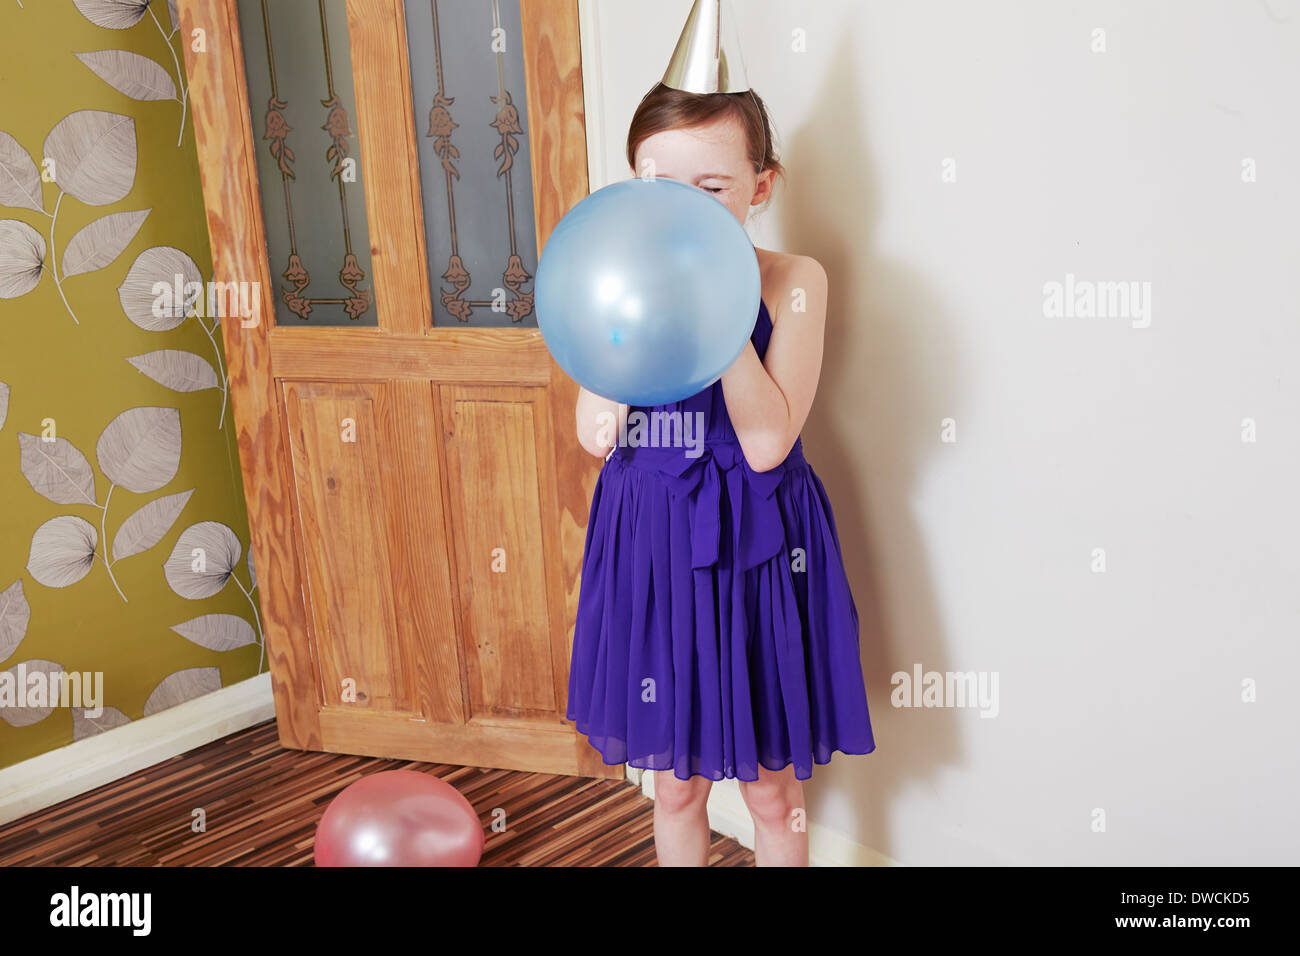 Girl blowing up blue balloon - Stock Image